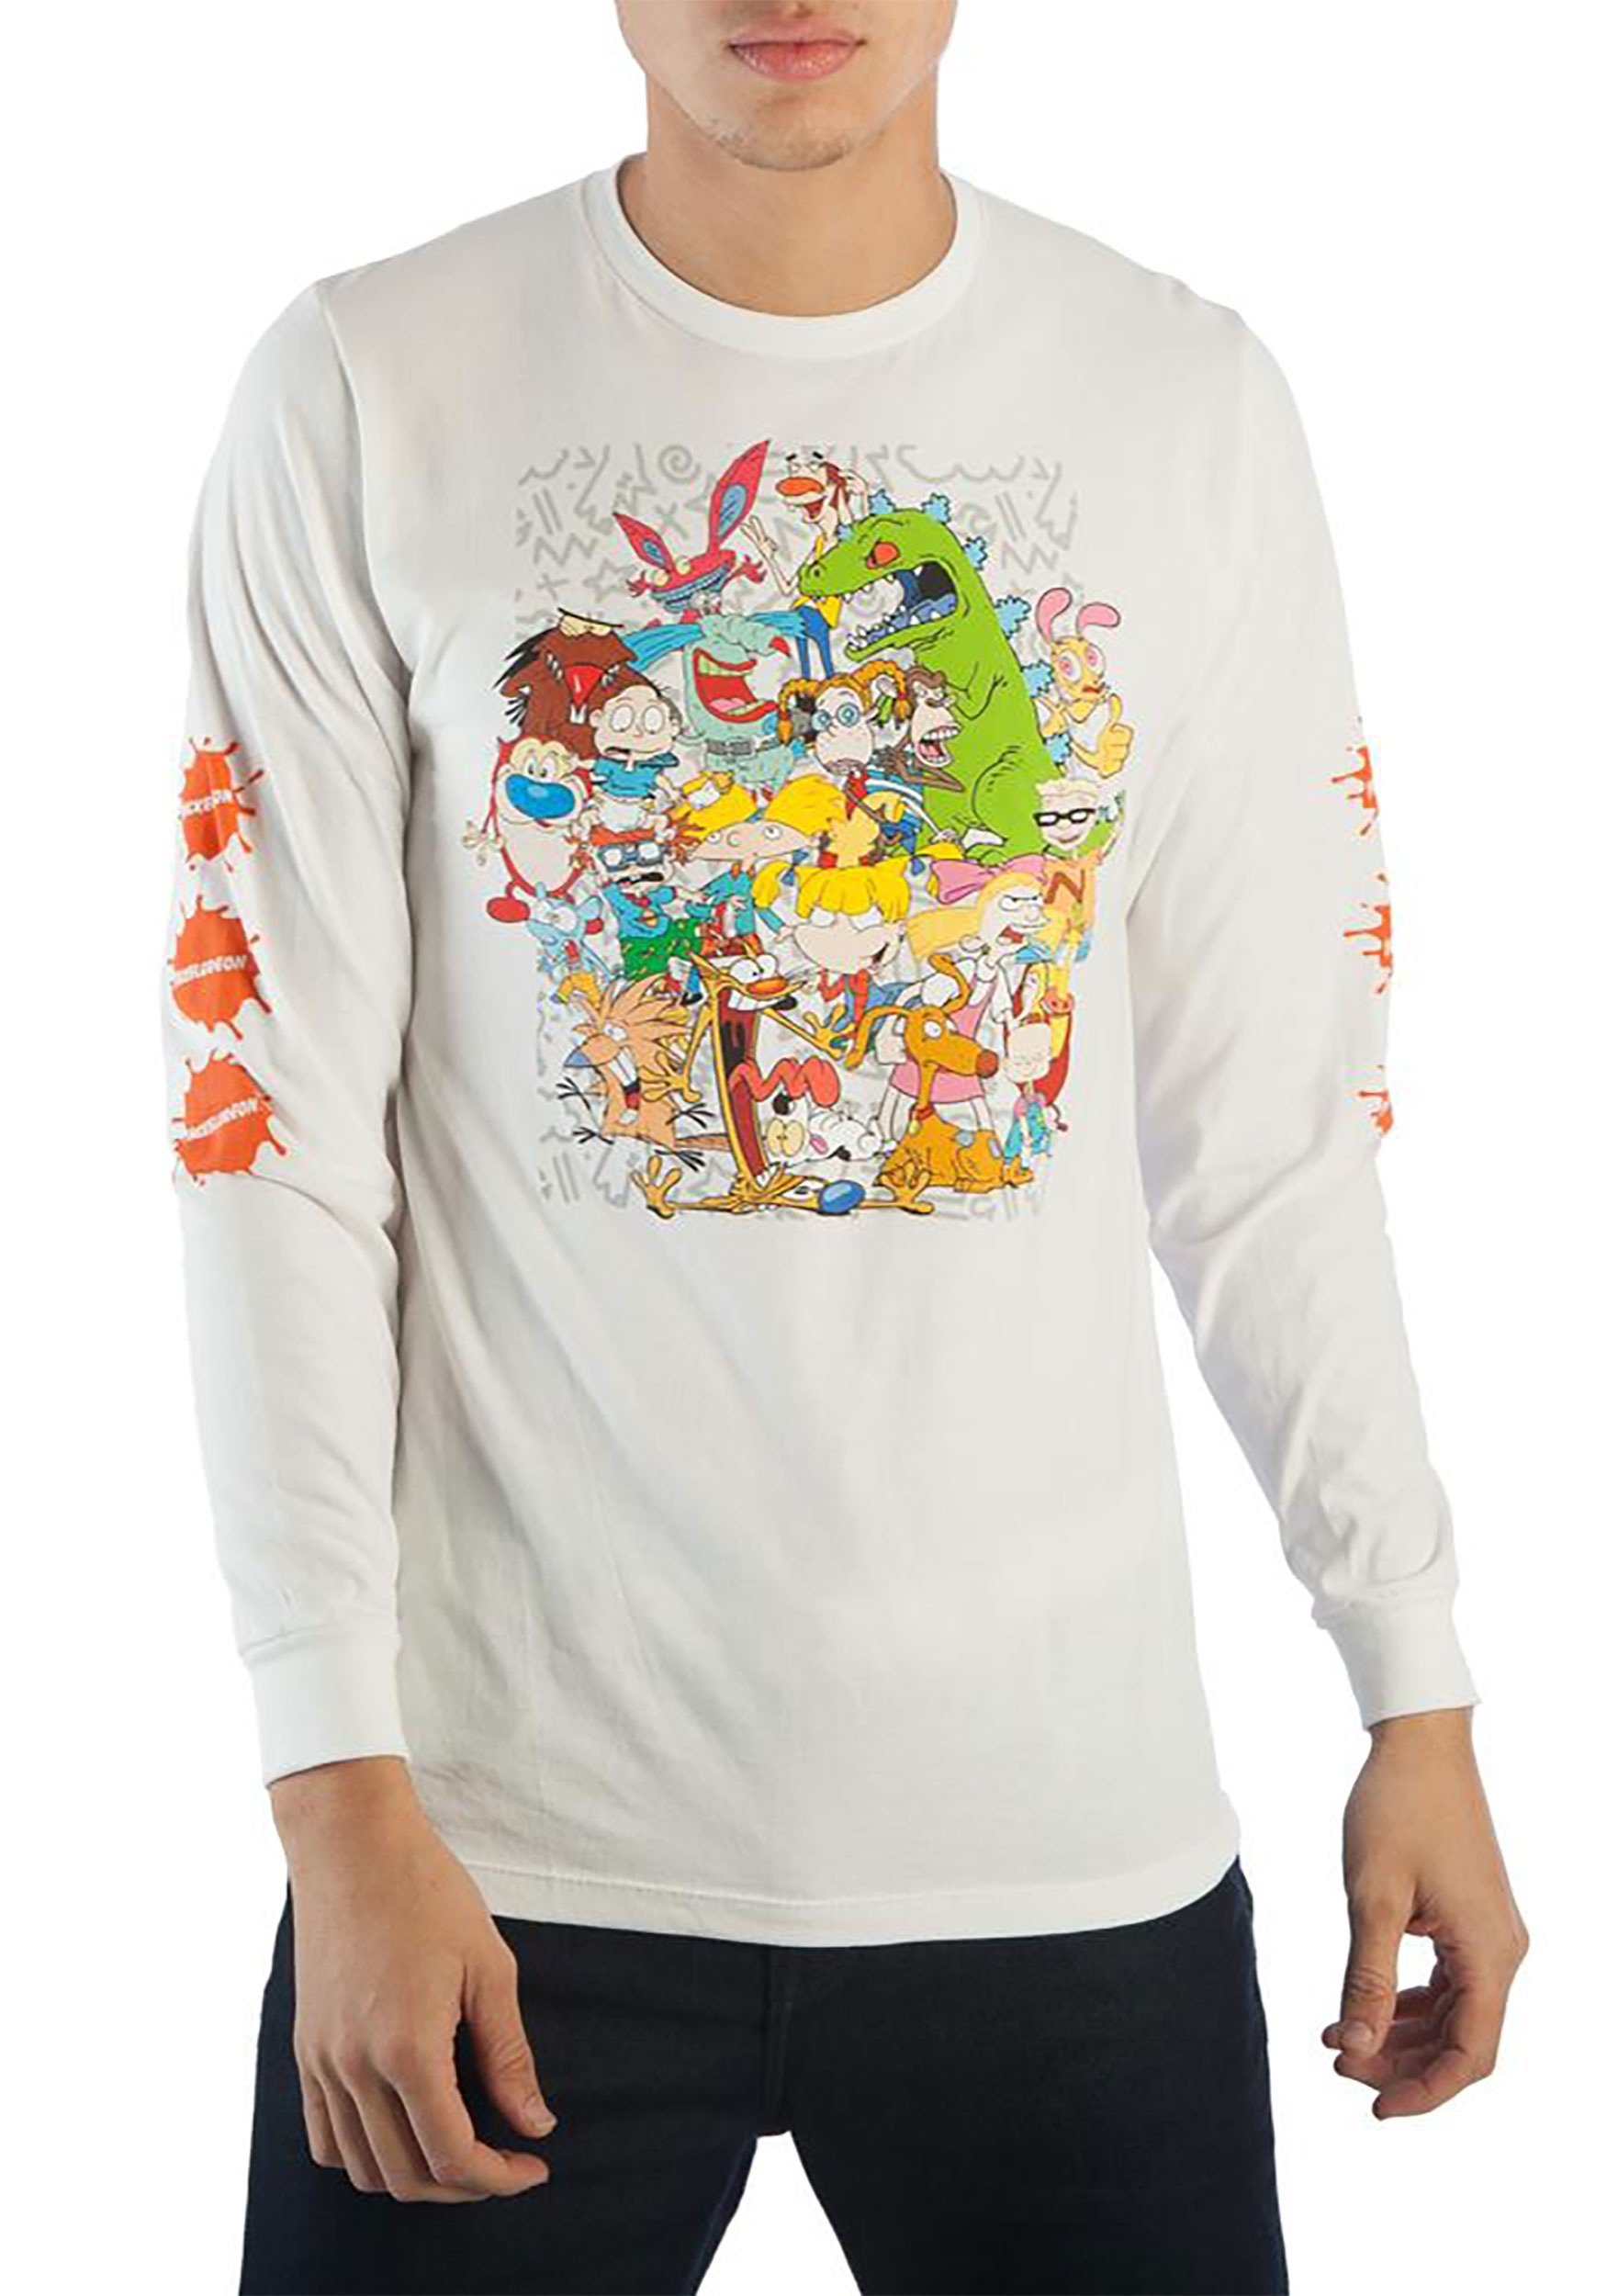 6a17f8d3cb6 Nickelodeon 90s Characters Group Long Sleeve Tee1